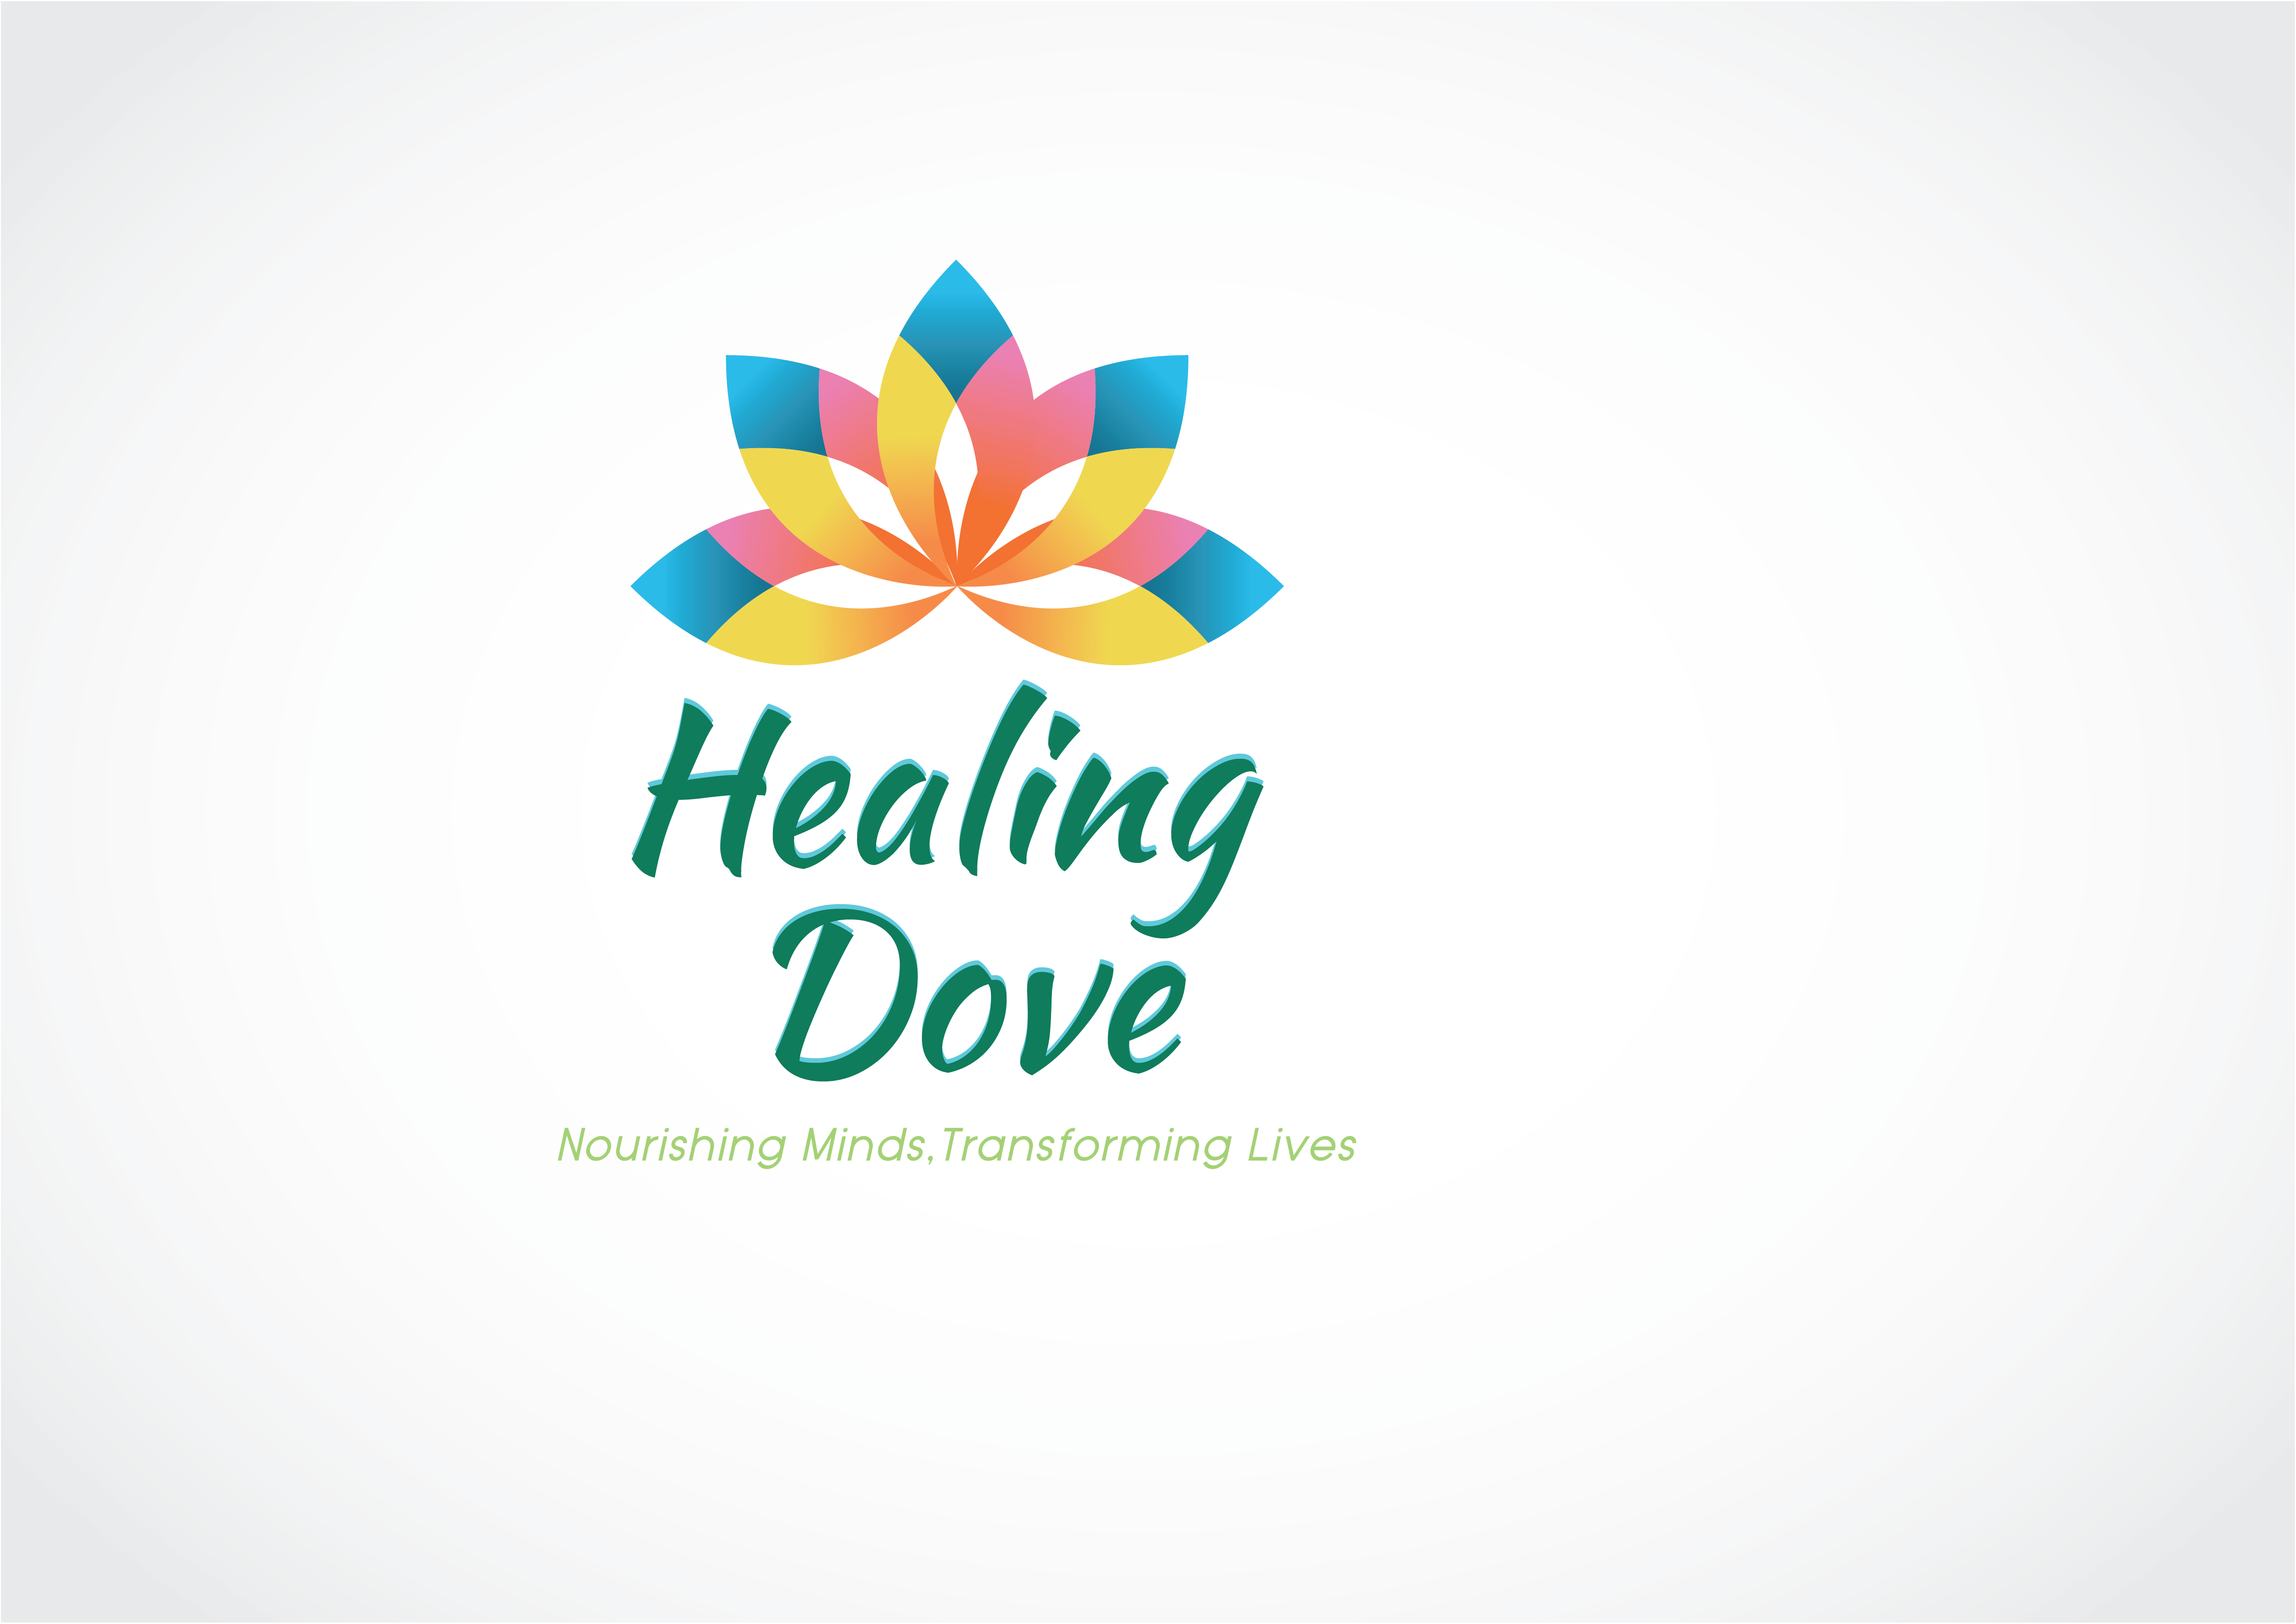 Healing Dove Mumbai Internship Volunteering Opportunity